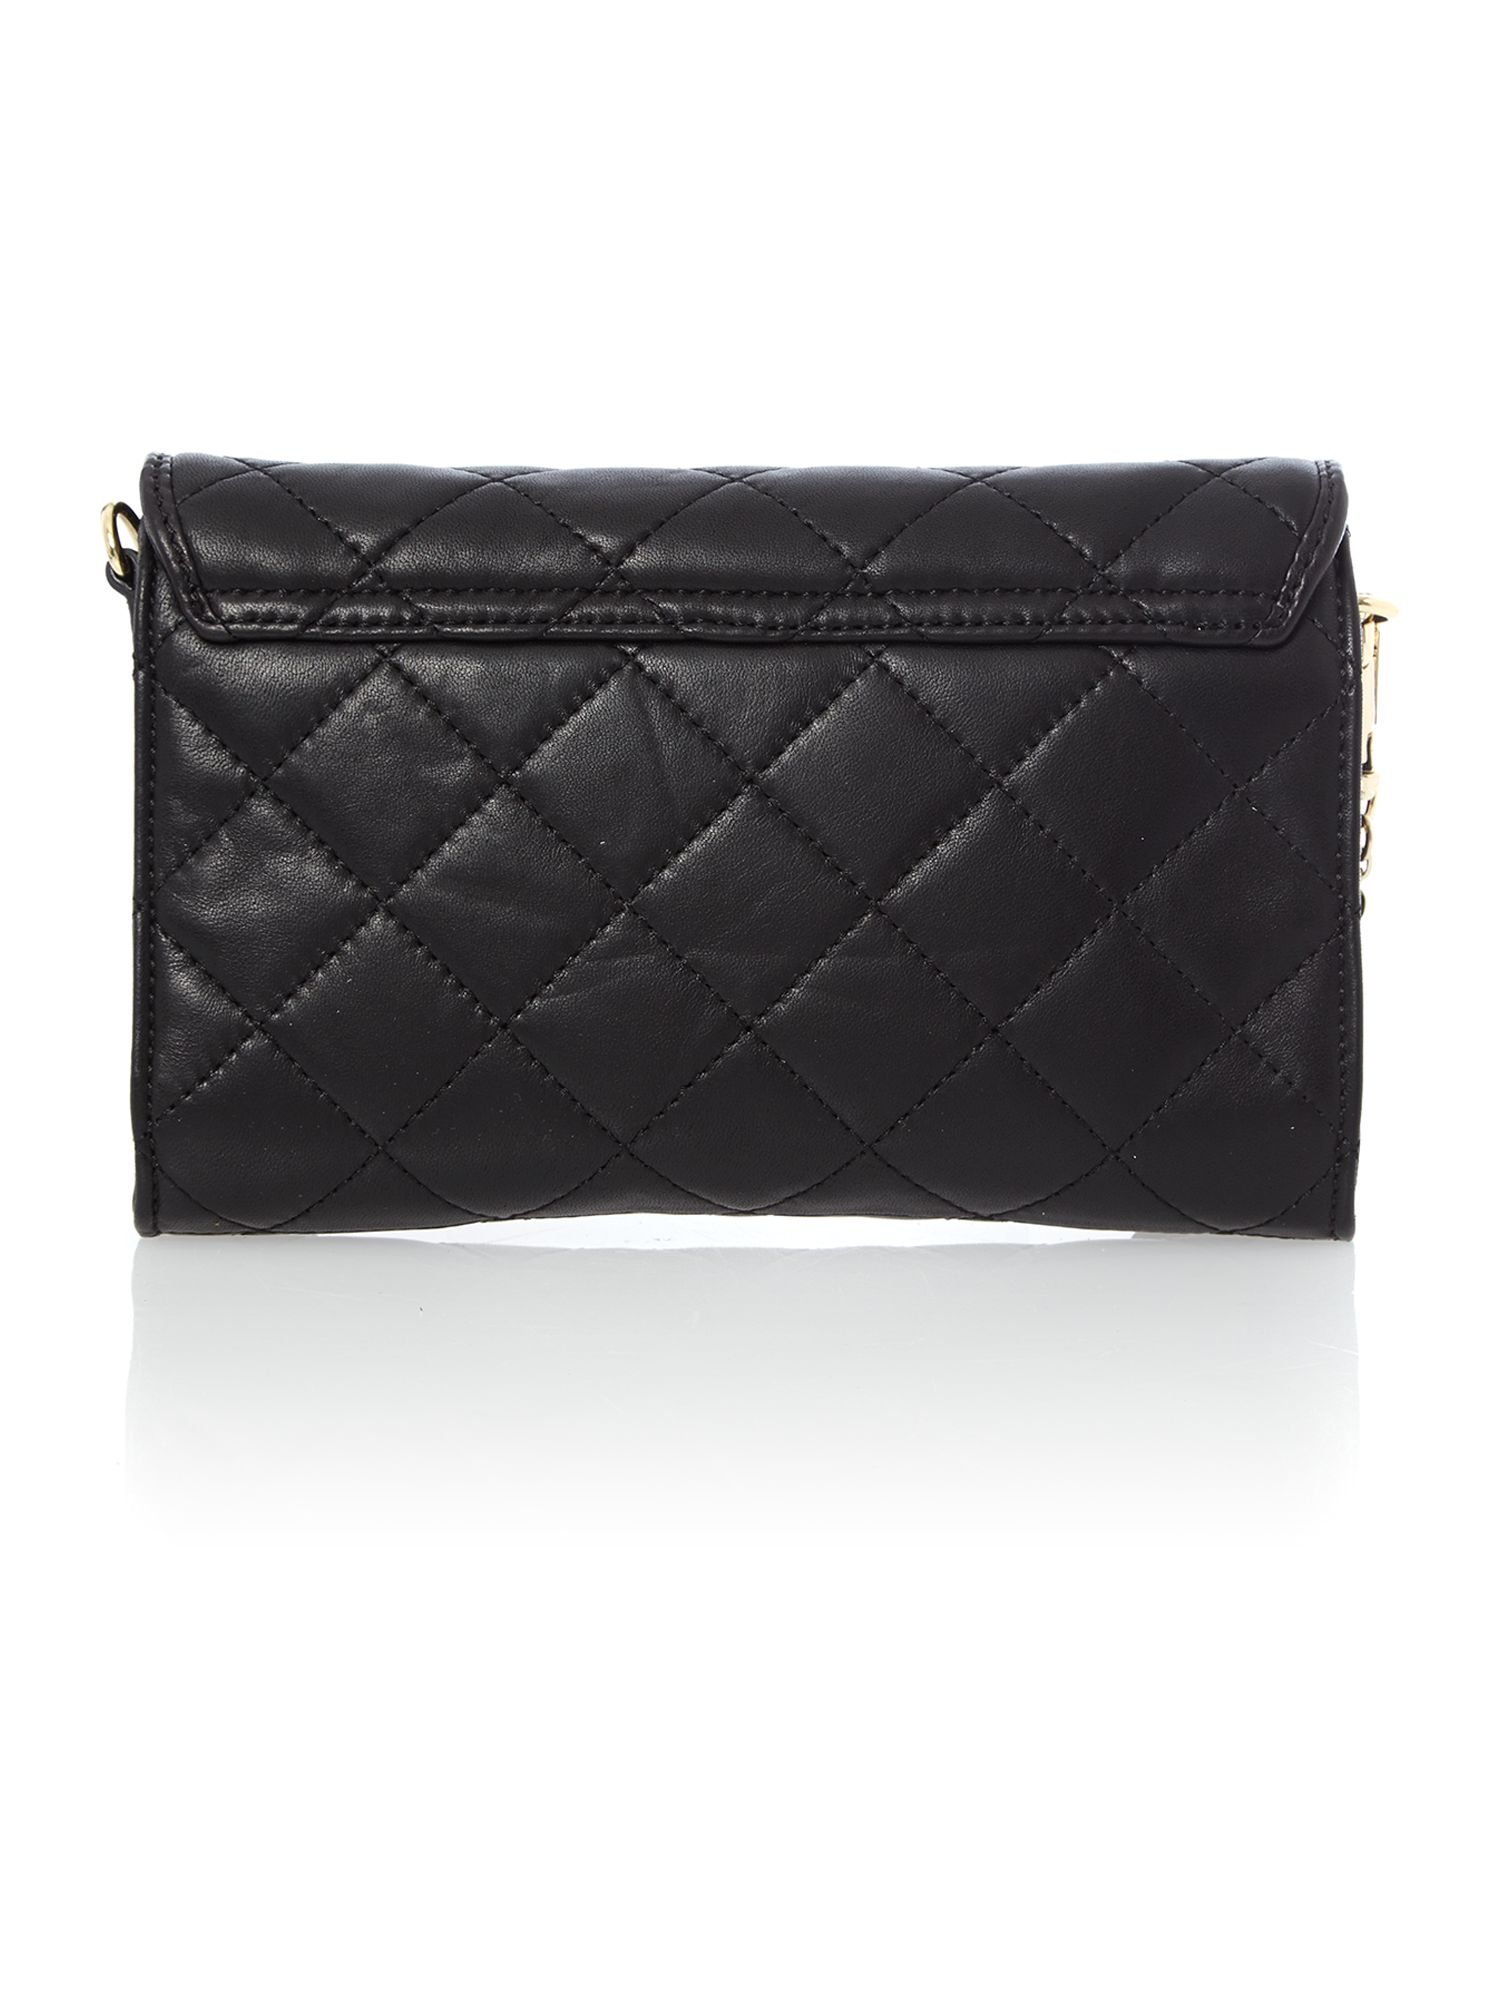 Gansevoort black small flap over cross body bag